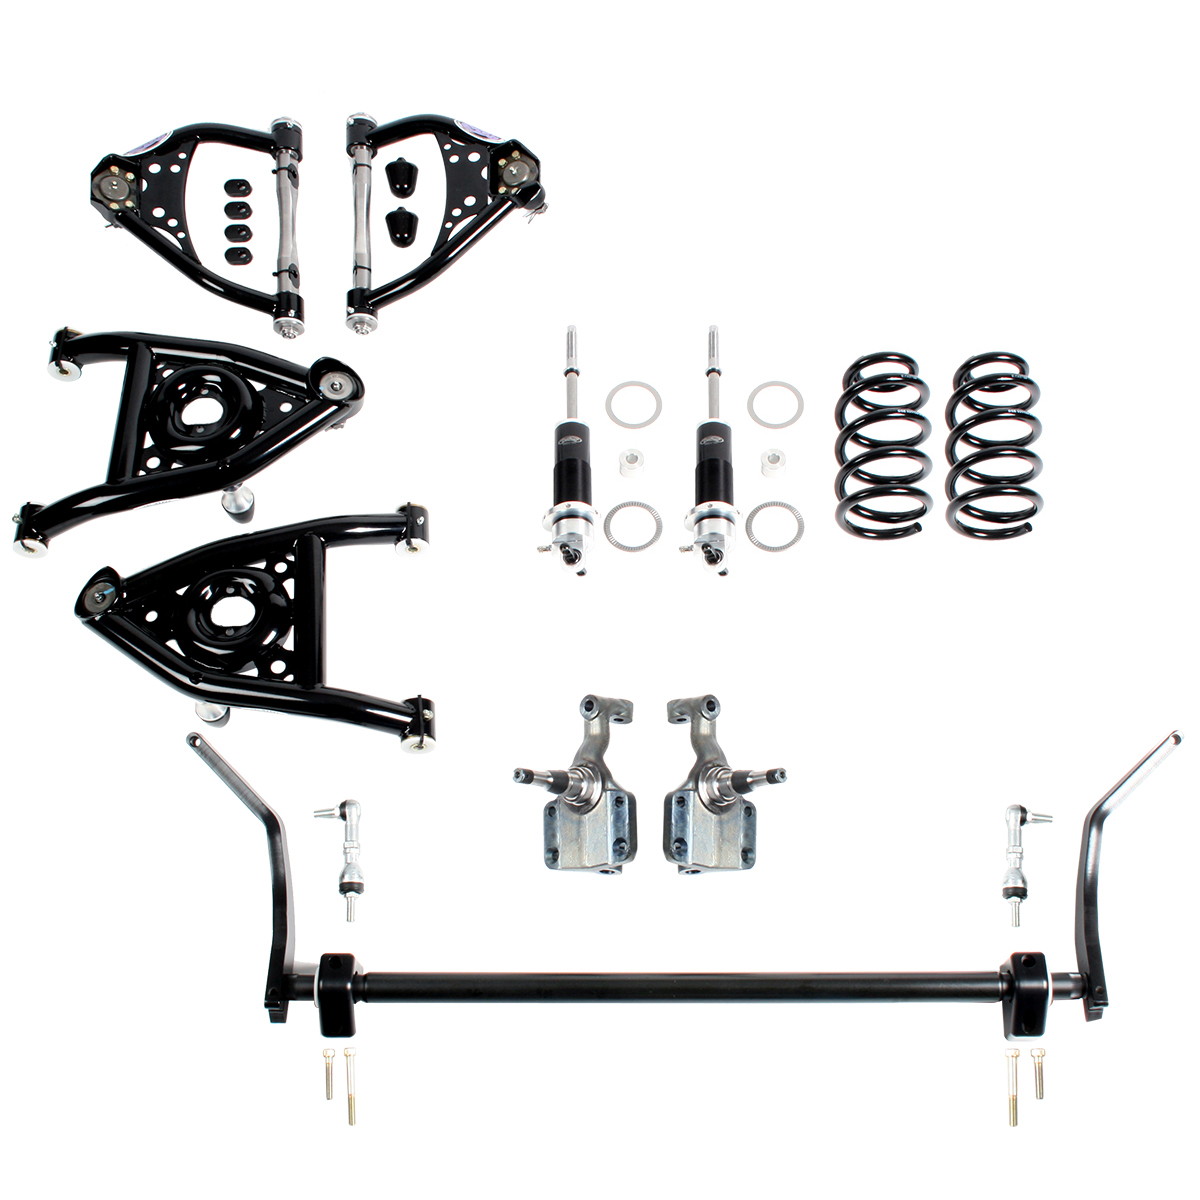 Detroit Speed  Speed Kit 2 Front Suspension Kit with Splined Sway Bar Single Adjustable Shocks 1964-1966 A-Body BBC